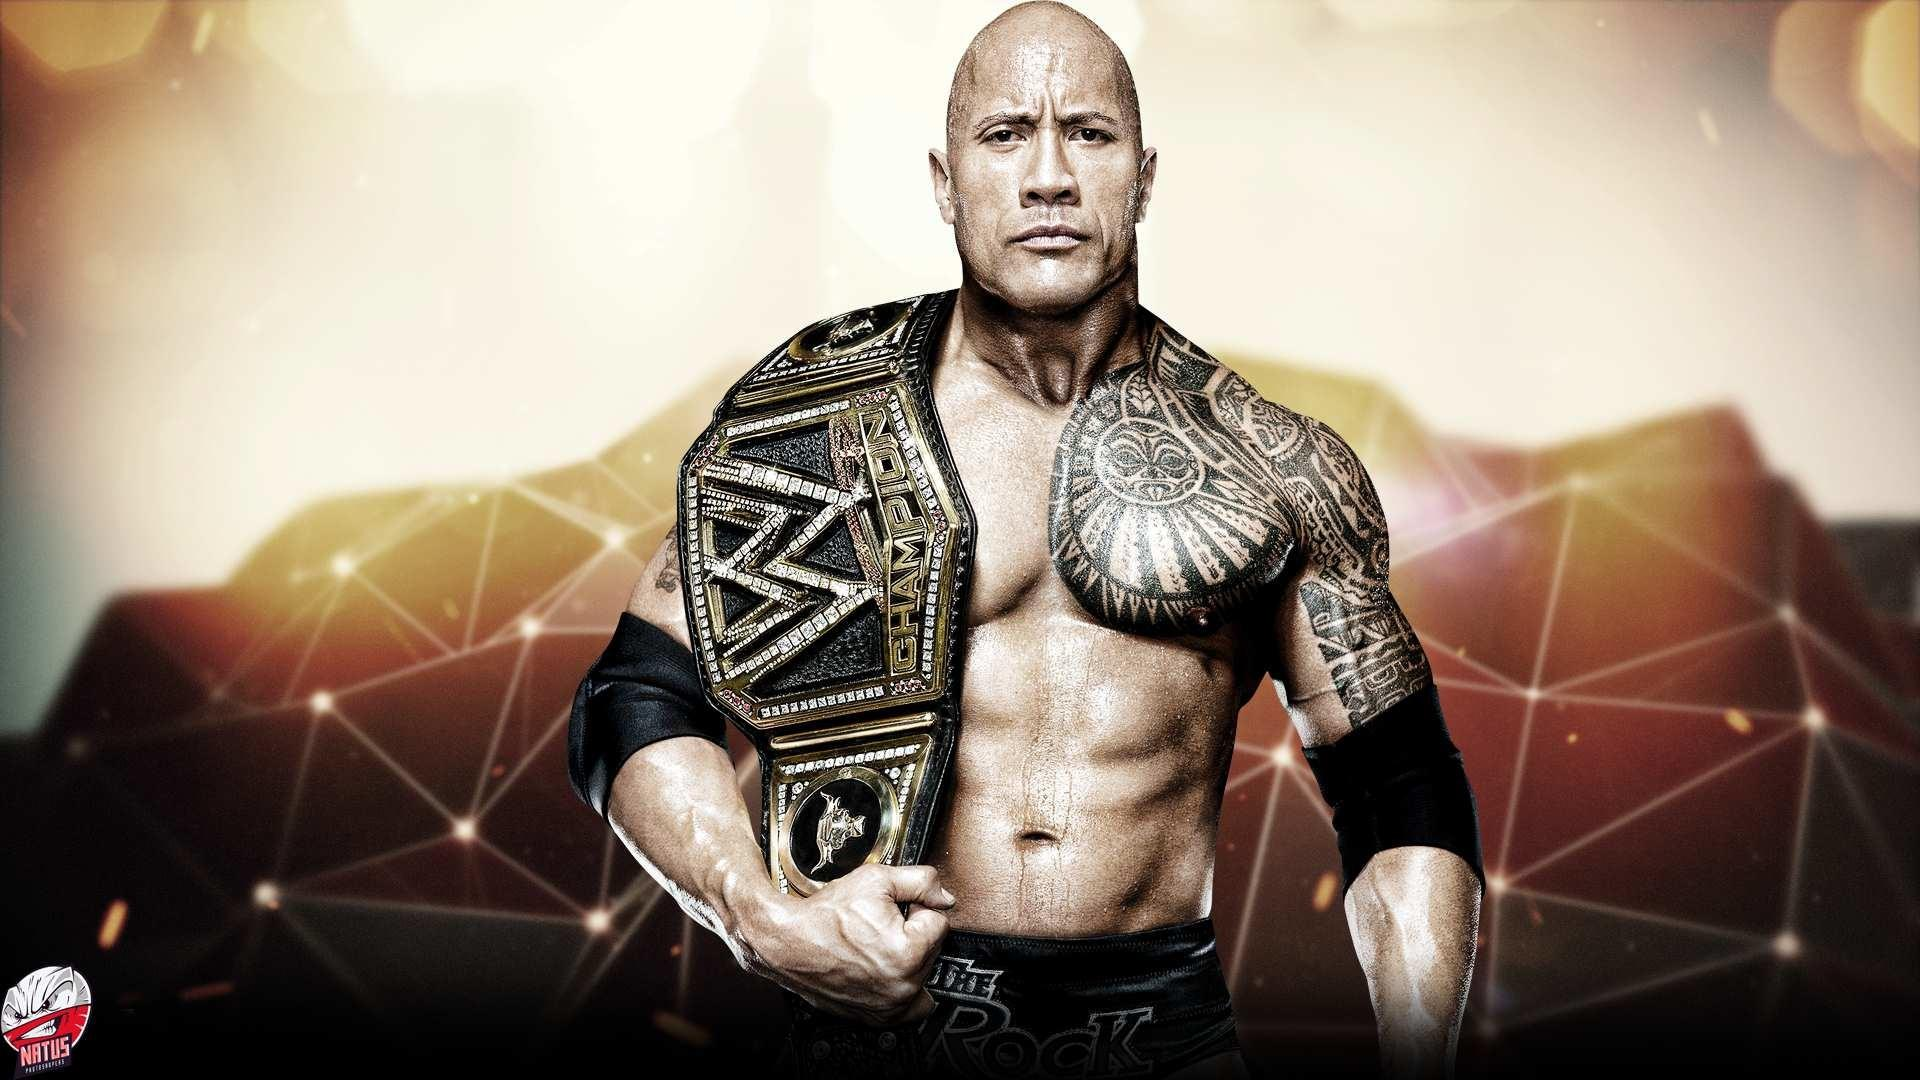 86+ Wwe Wrestling Wallpapers